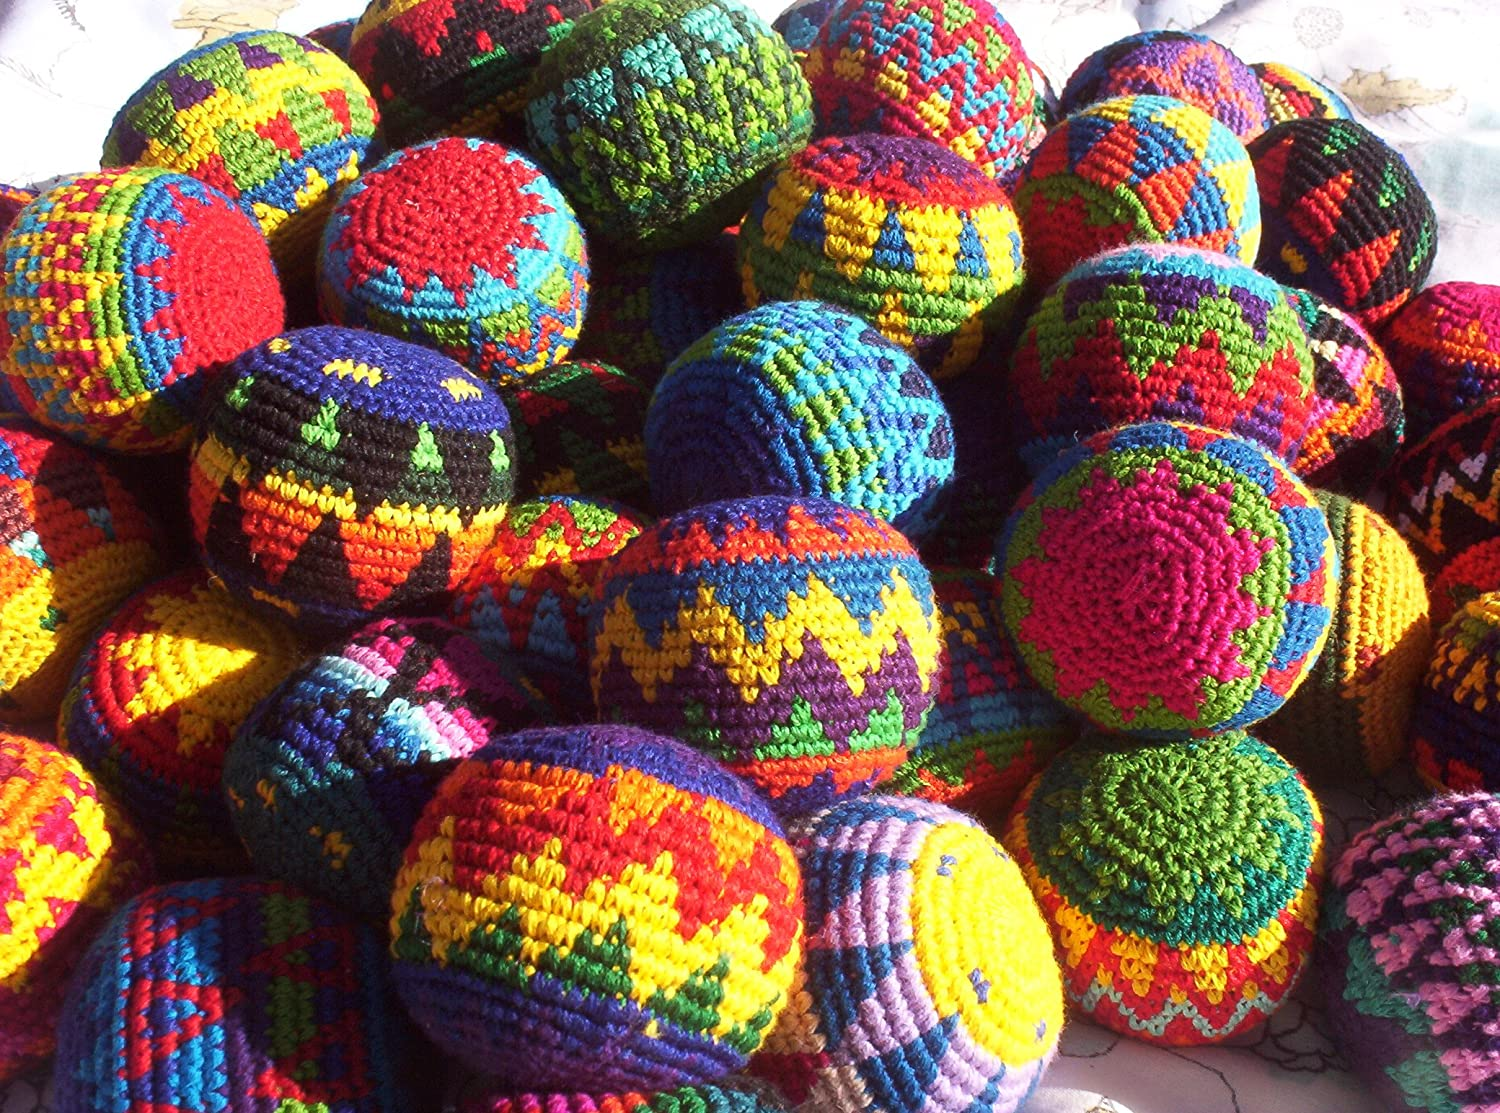 Penny Lane Brand Hacky Sacks Imported from Guatamala allenjoy easter basket butterfly photography backdrops spring photography background photo studio background